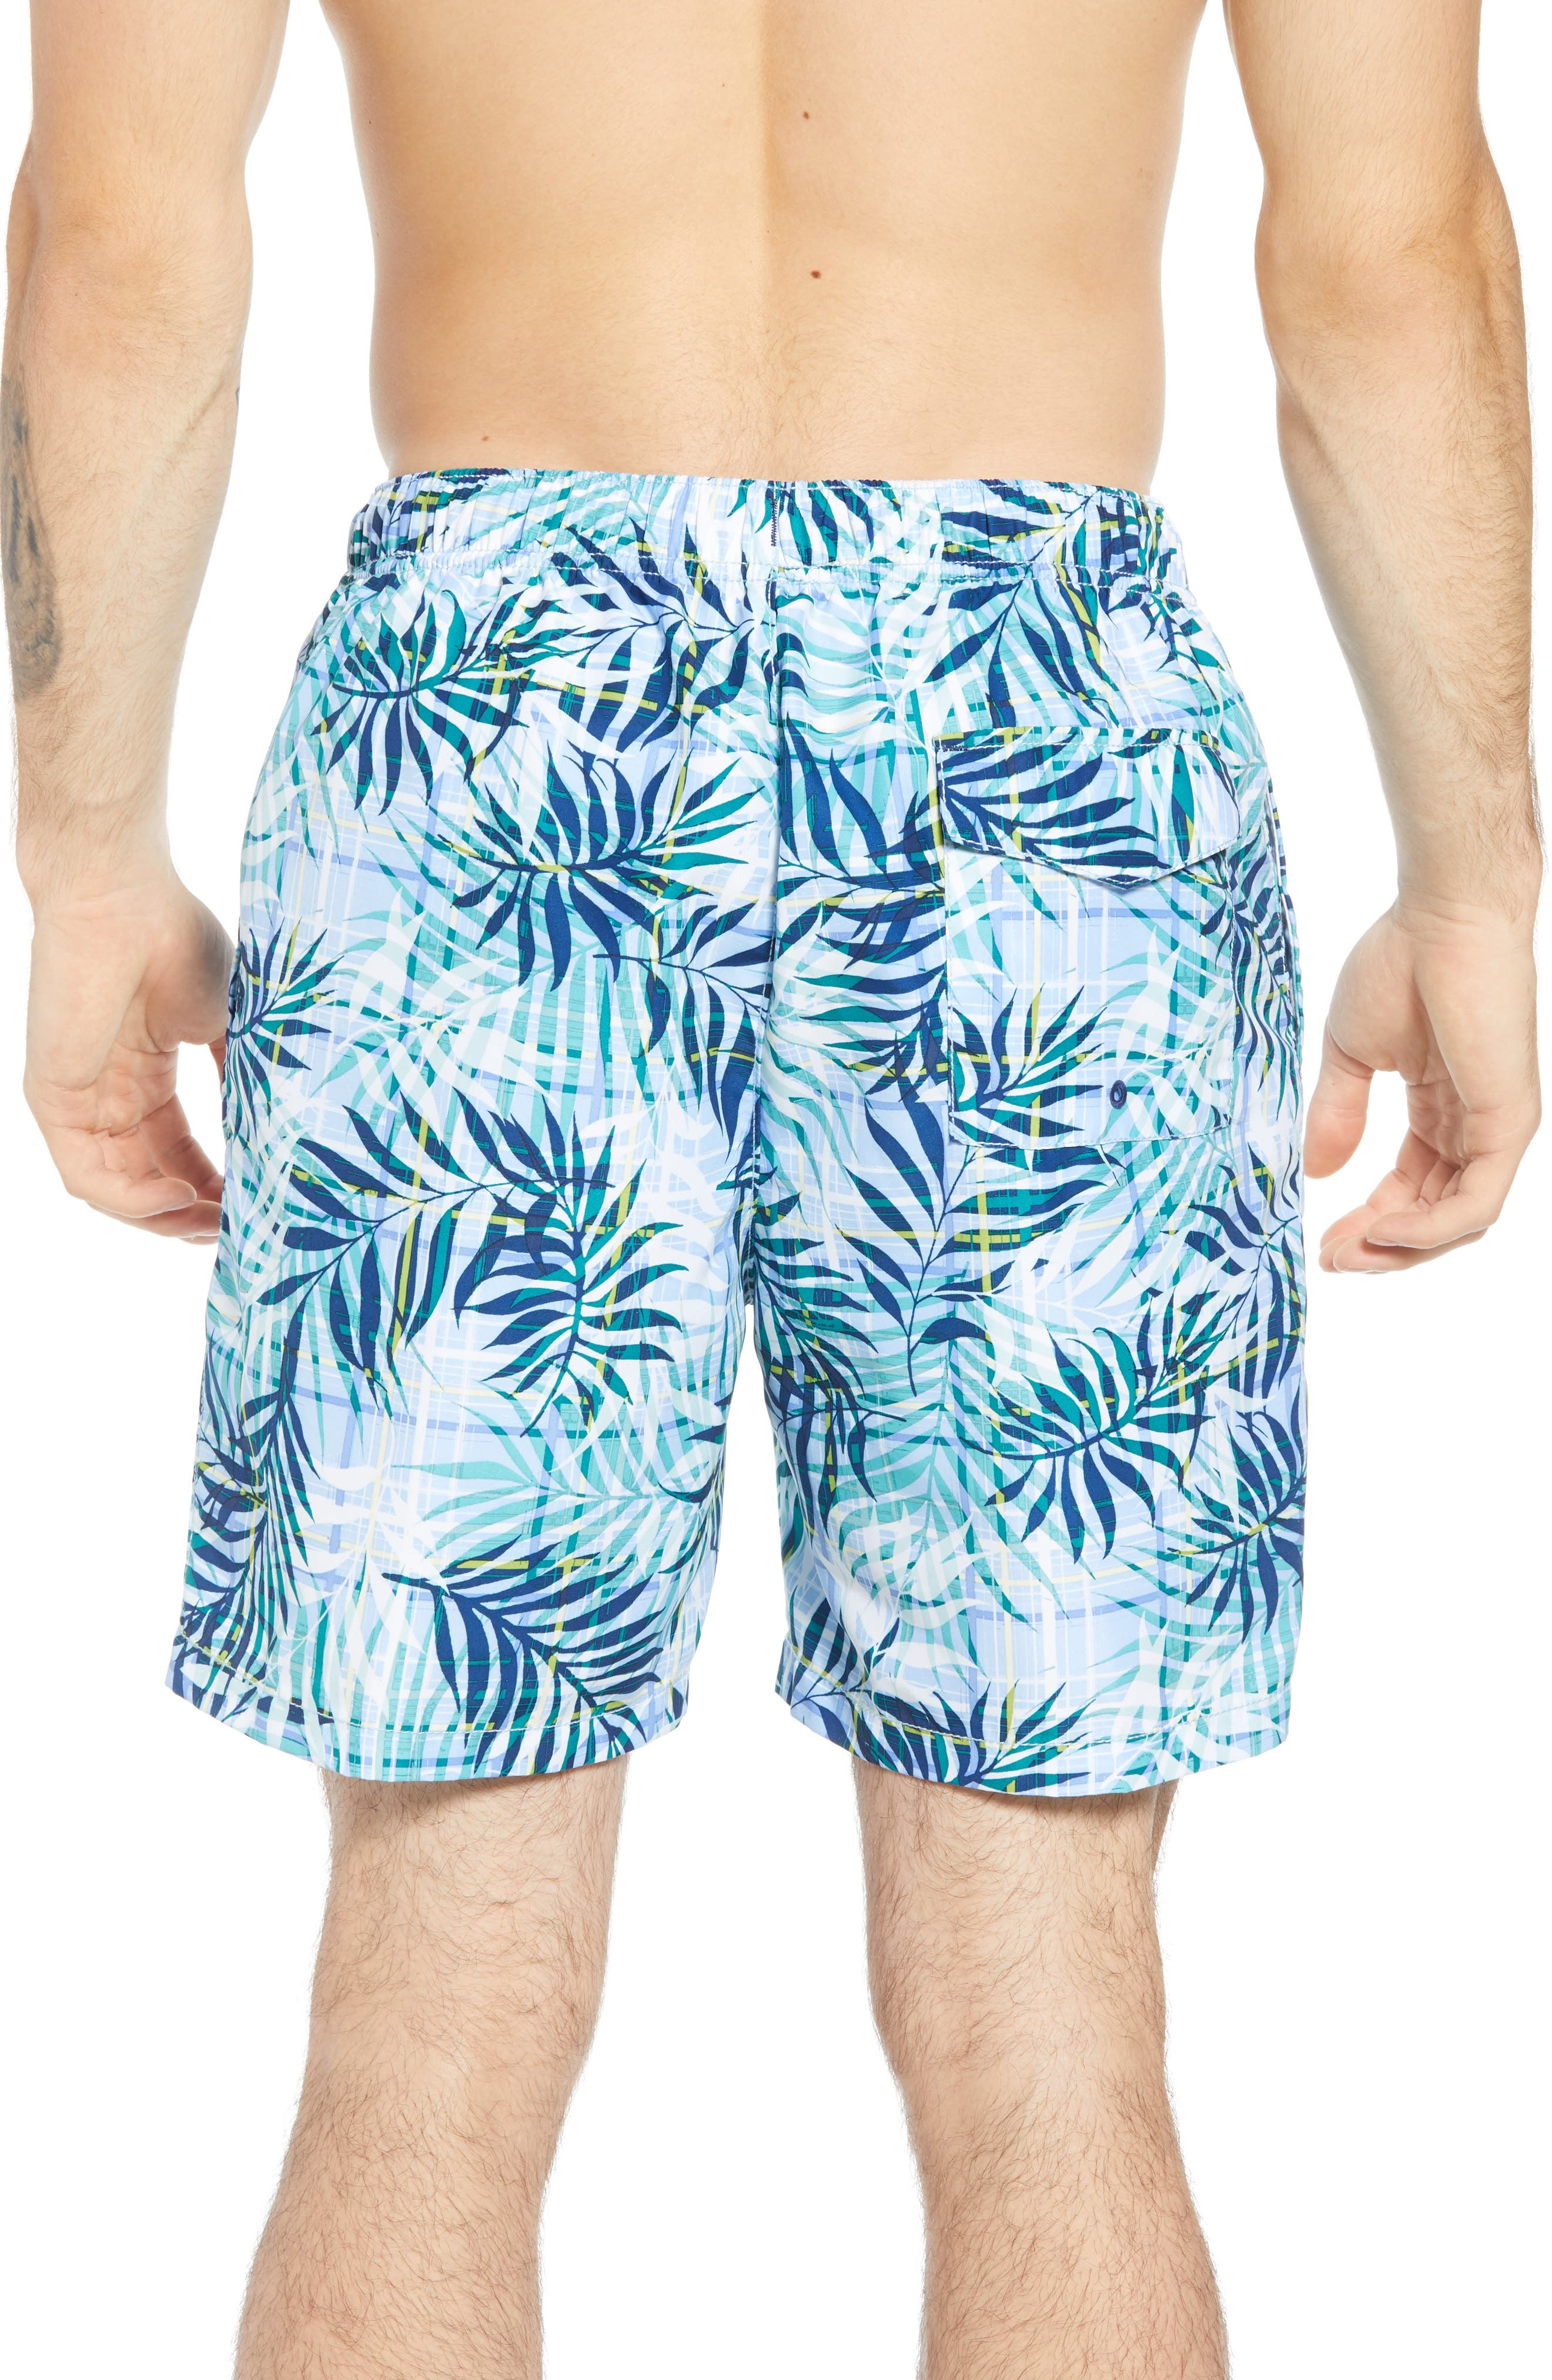 Naples Terraba Swim Trunks,                             Alternate thumbnail 2, color,                             AQUA ICE